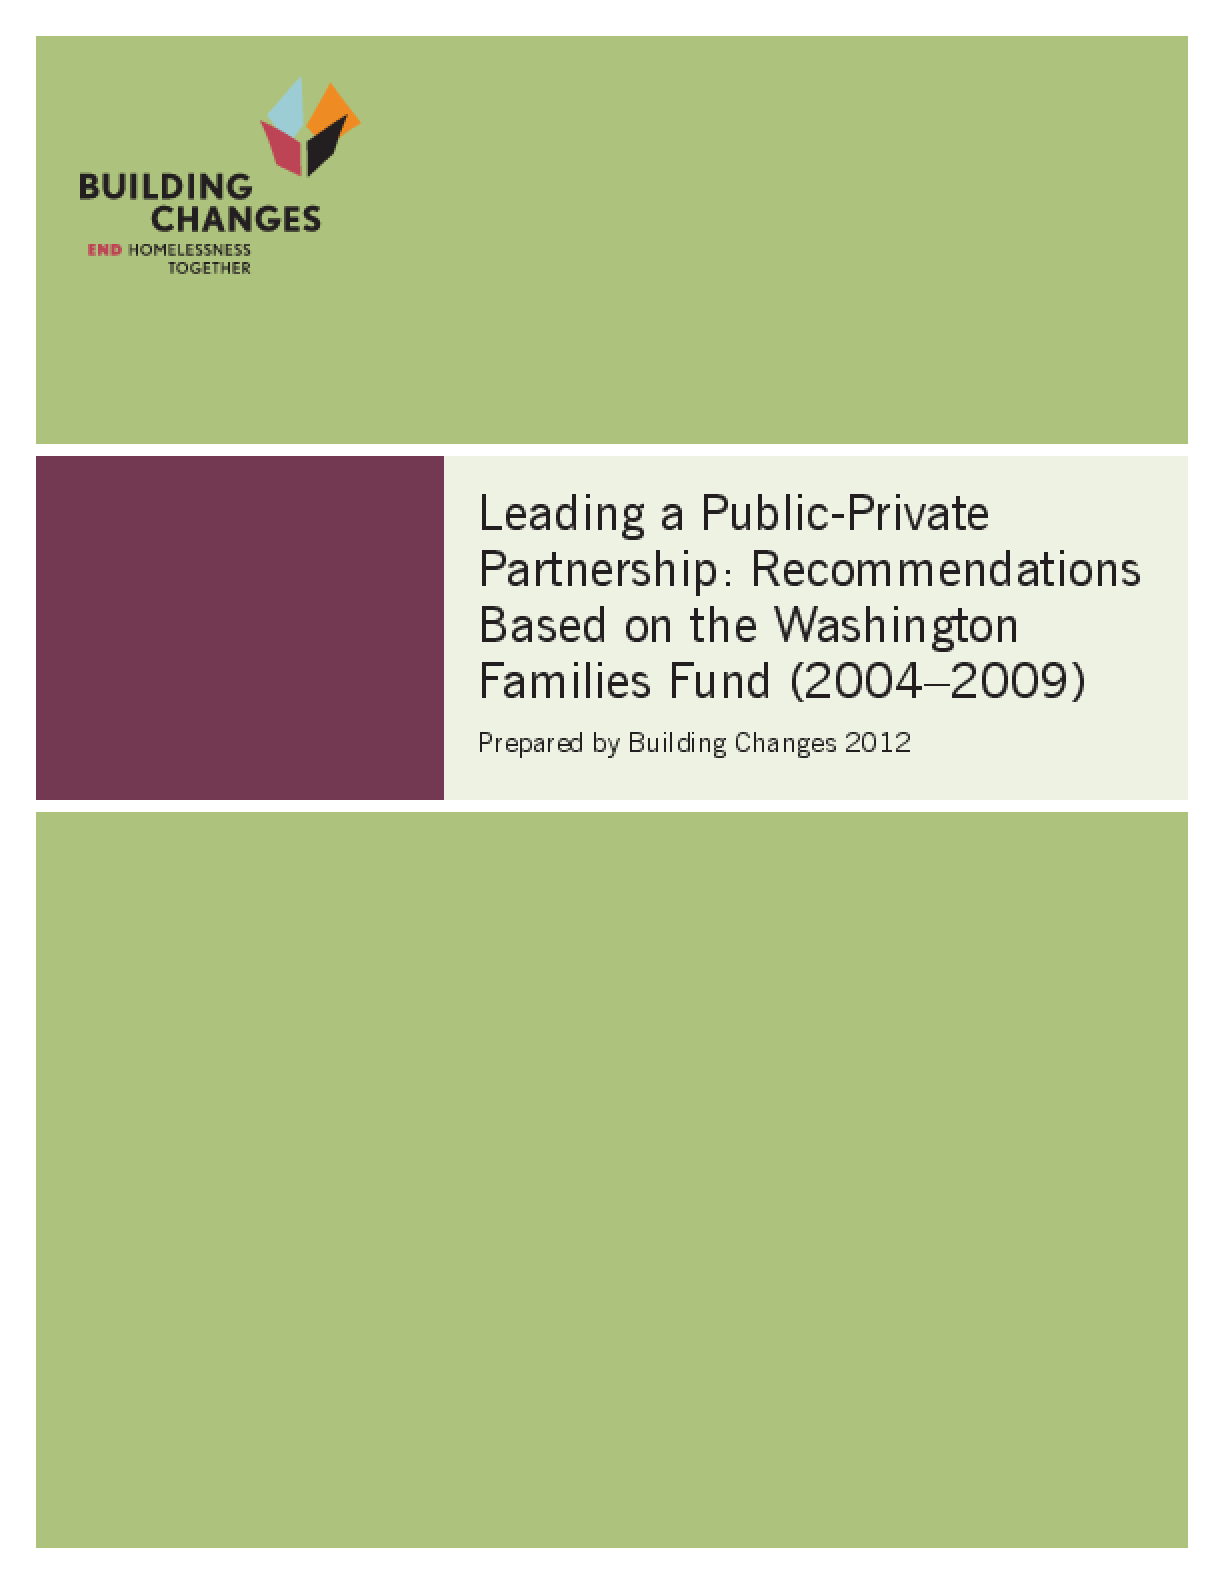 Leading a Public-Private Partnership: Recommendations Based on the Washington Families Fund (2004-2009)